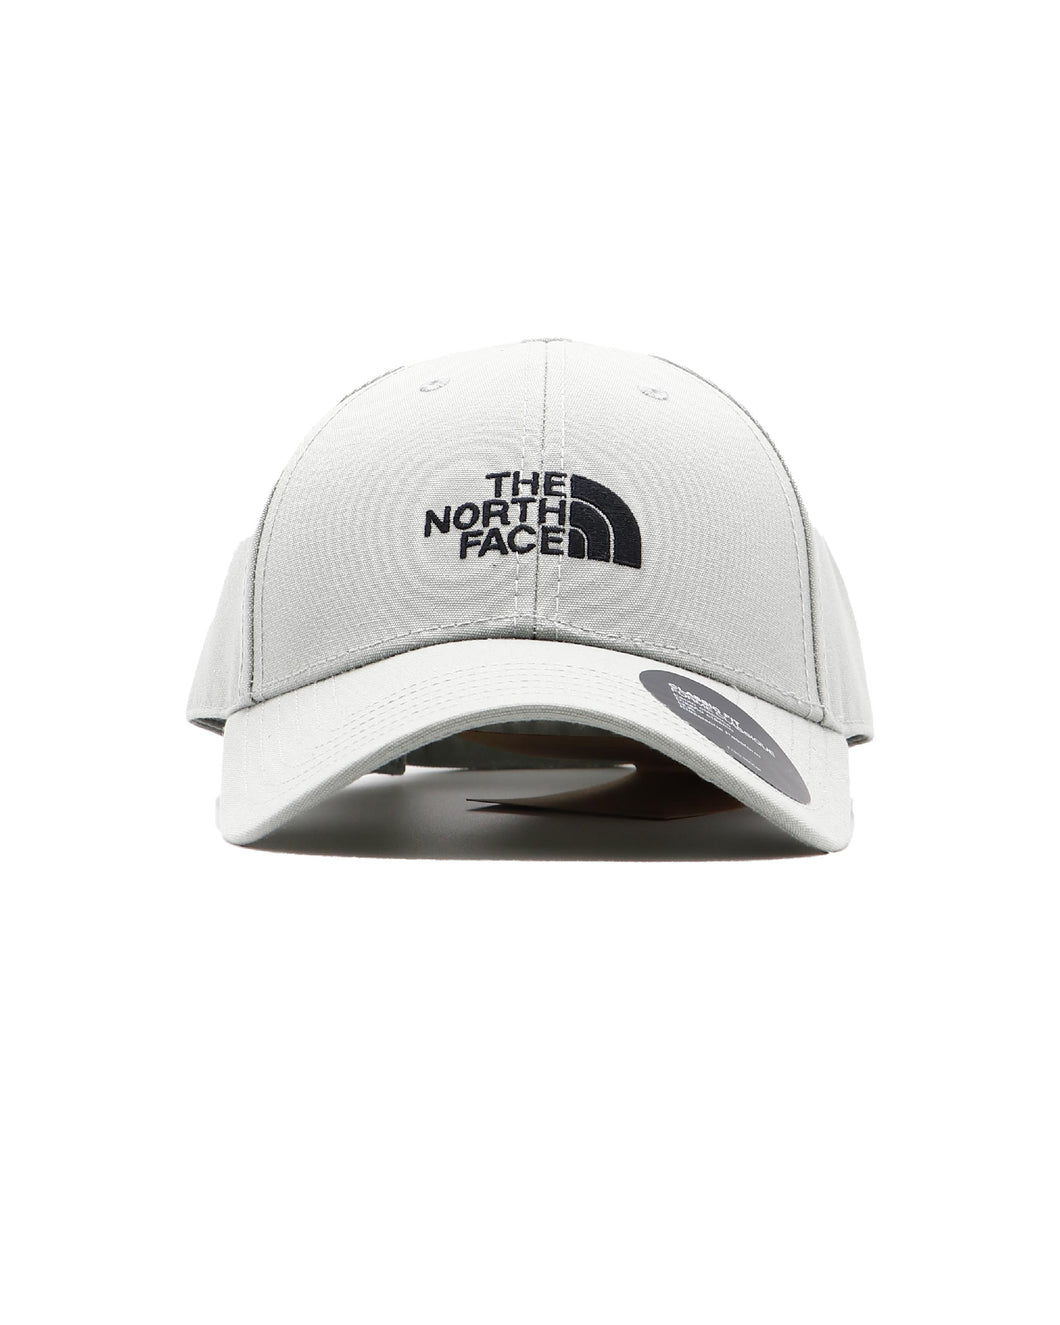 The North Face CappelloRecycled 66 Classic Wrought Iron